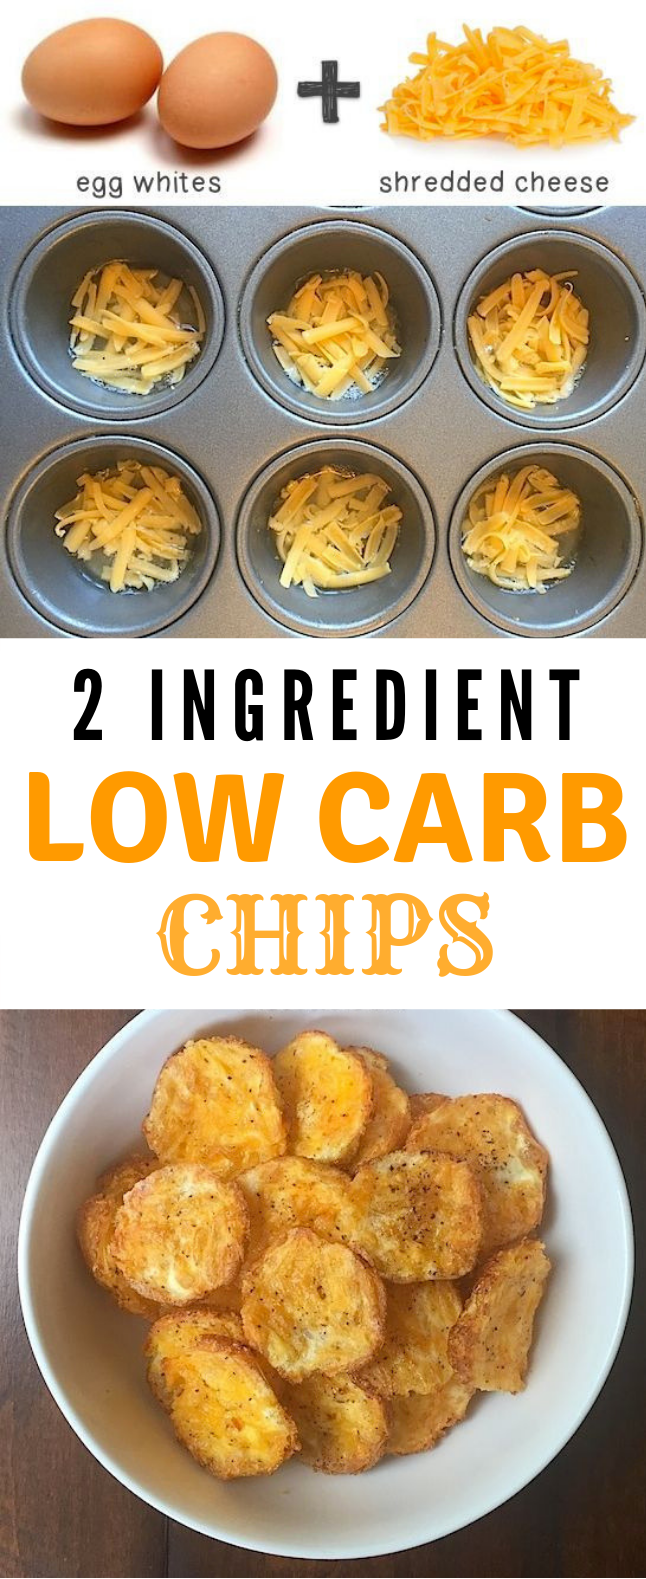 2 Ingredient Low Carb Chips #LowCarb #Chips